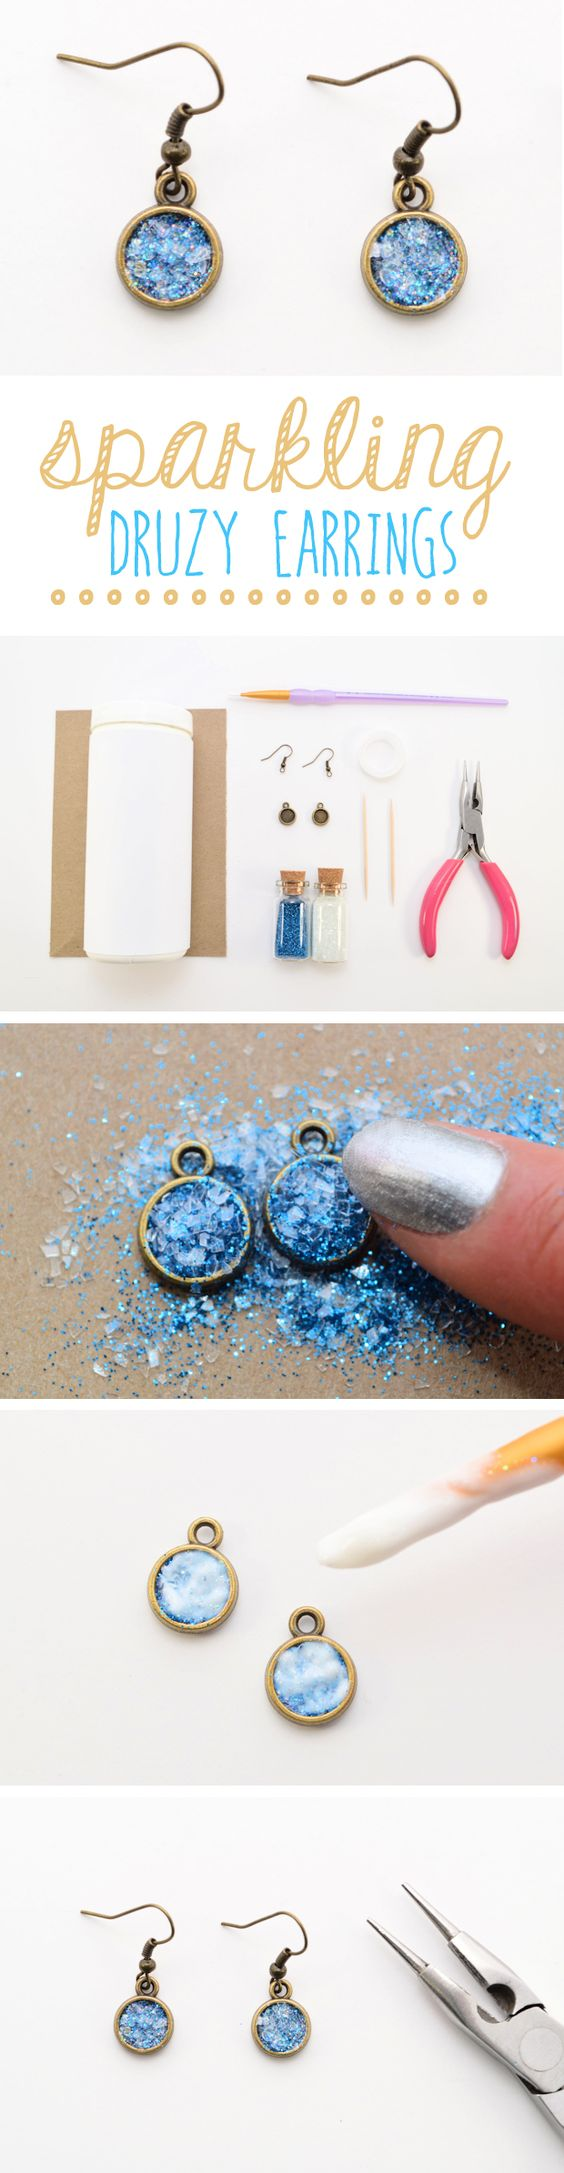 Step By Step Tutorials To Make Your Dream Earrings